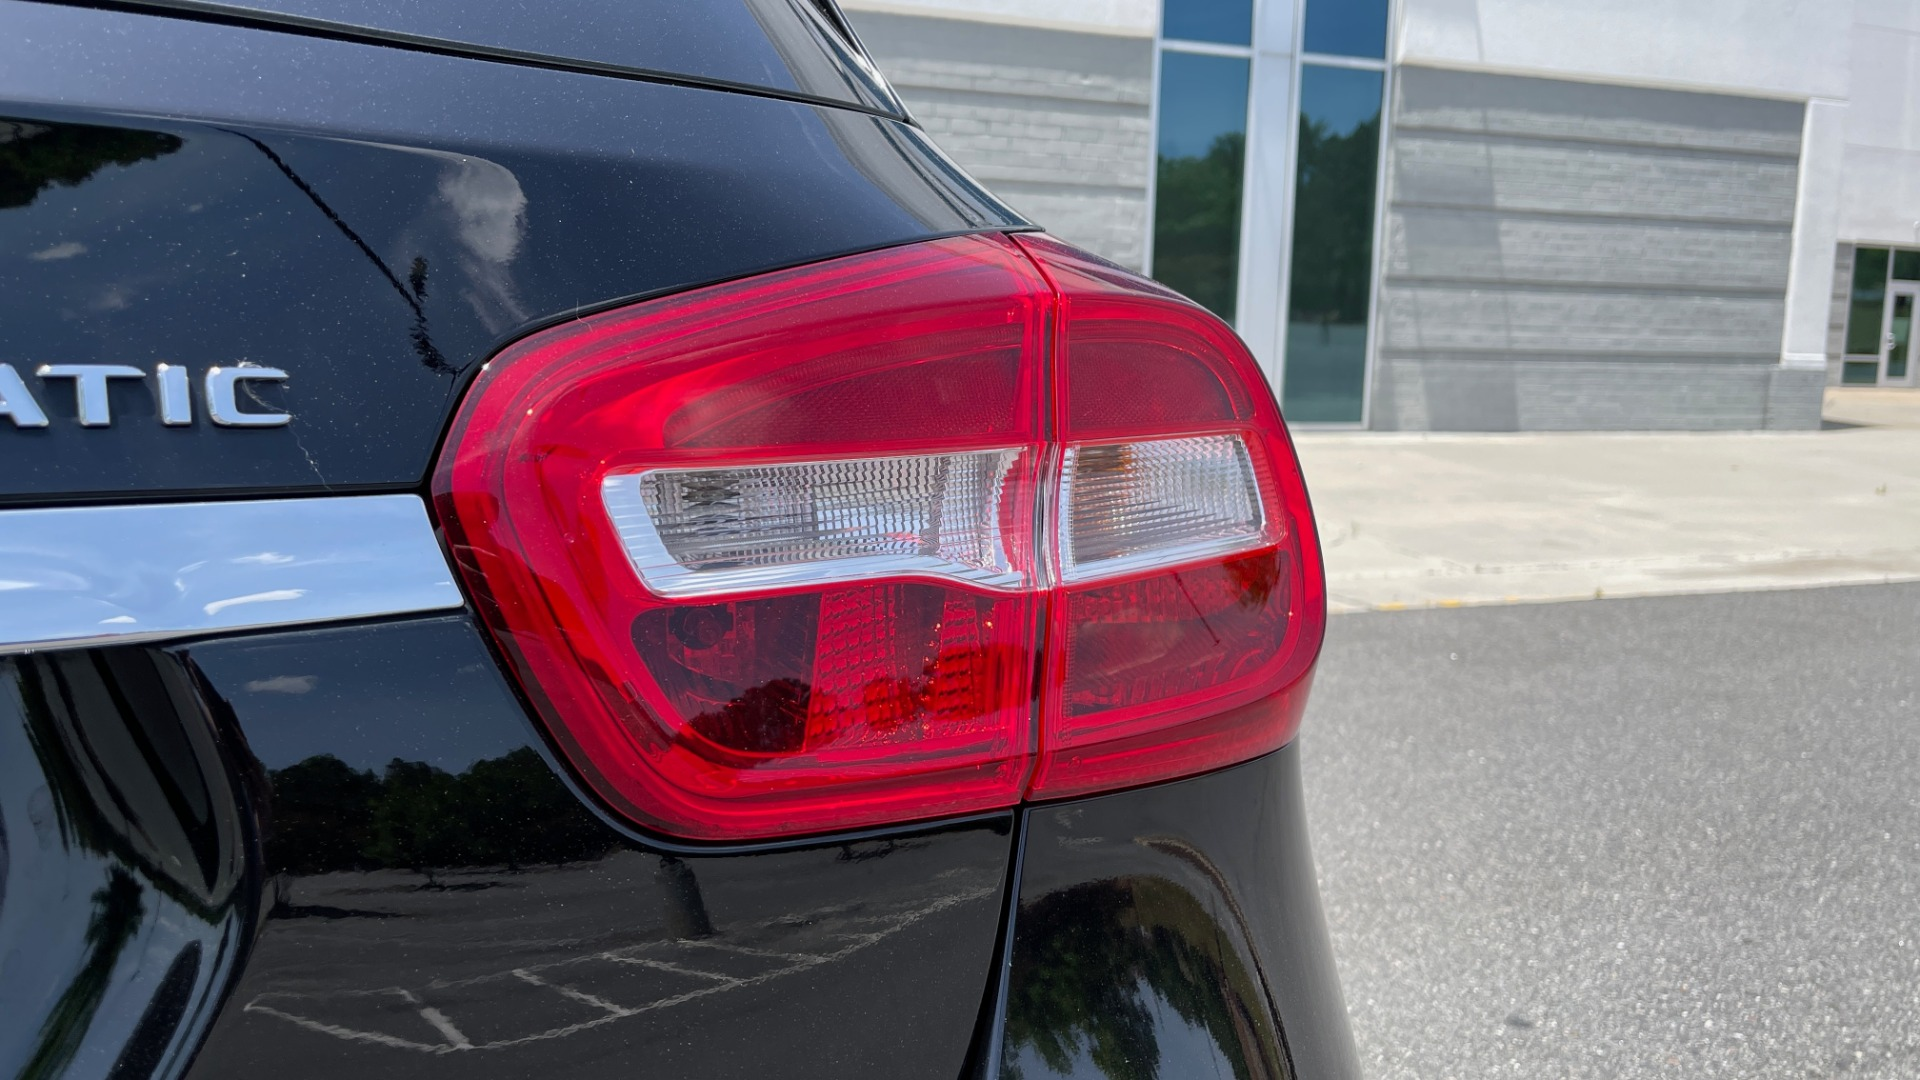 Used 2018 Mercedes-Benz GLA 250 4MATIC SUV / PANO-ROOF / HTD STS / BLIND SPOT ASST / APPLE for sale $31,995 at Formula Imports in Charlotte NC 28227 24